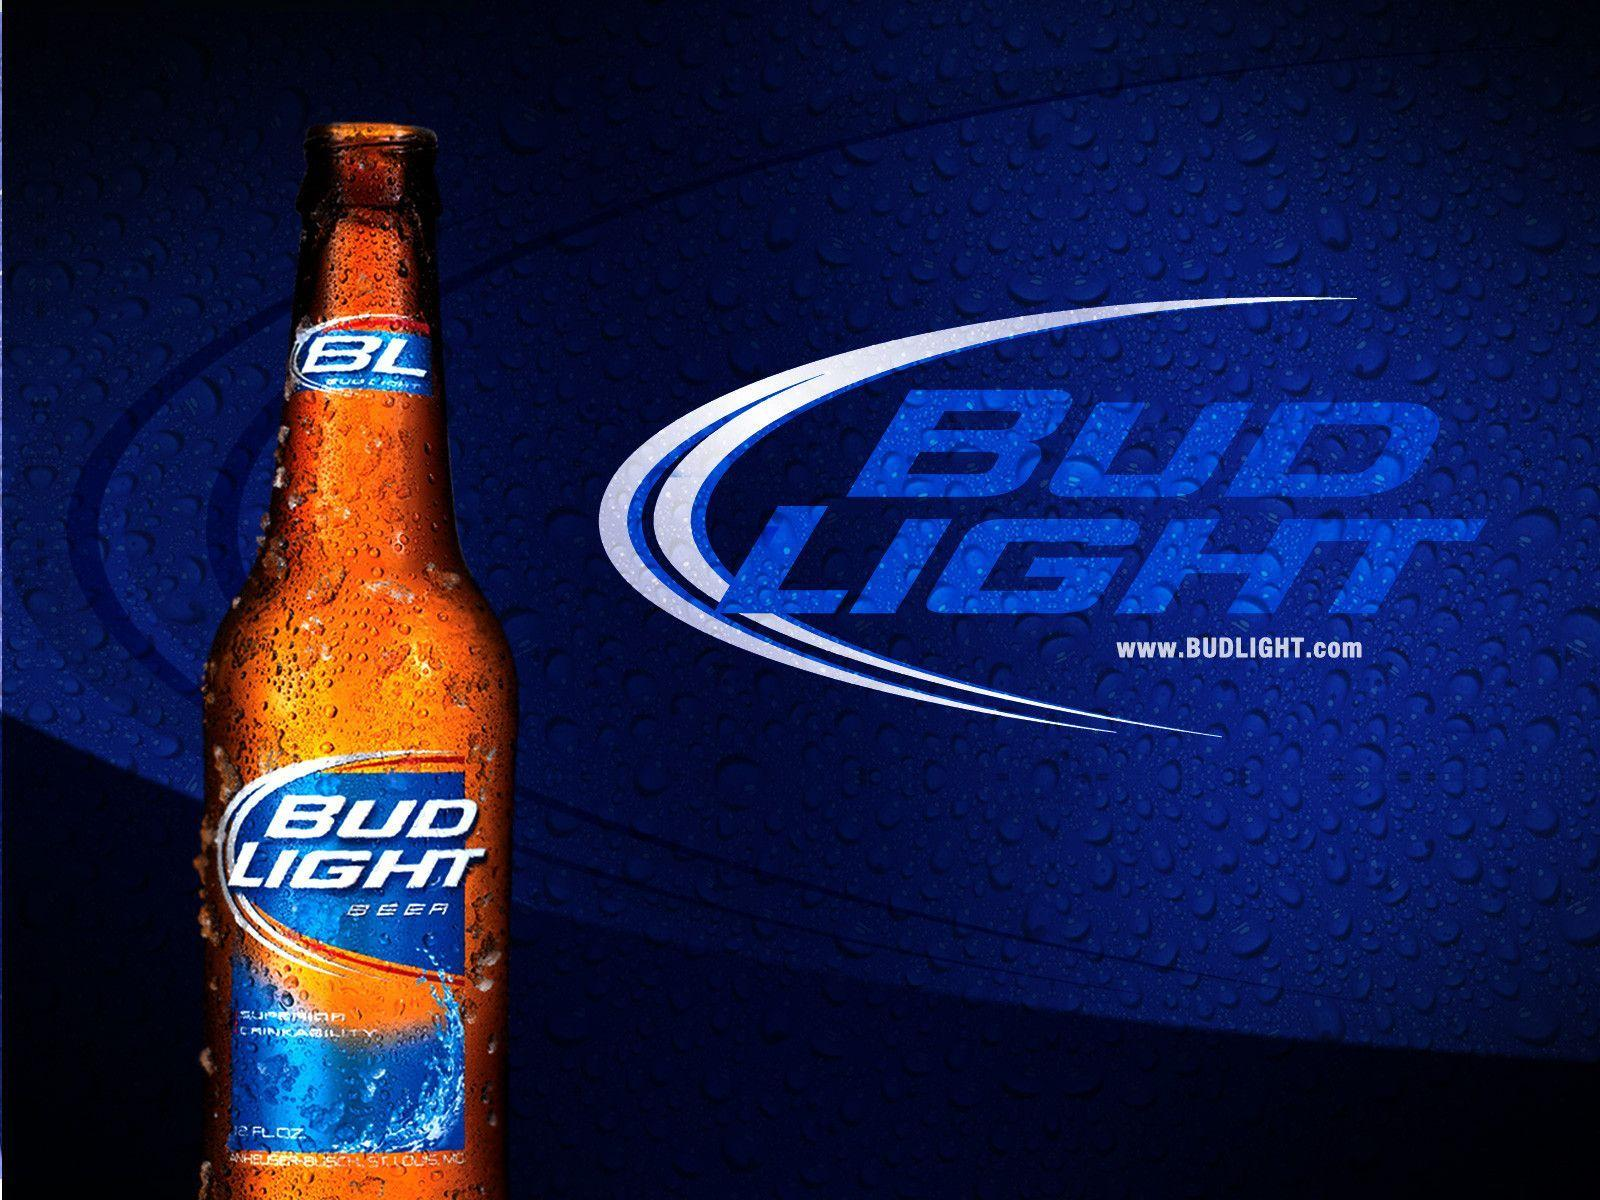 Bud Light Wallpapers Wallpaper Cave HD Wallpapers Download Free Images Wallpaper [1000image.com]